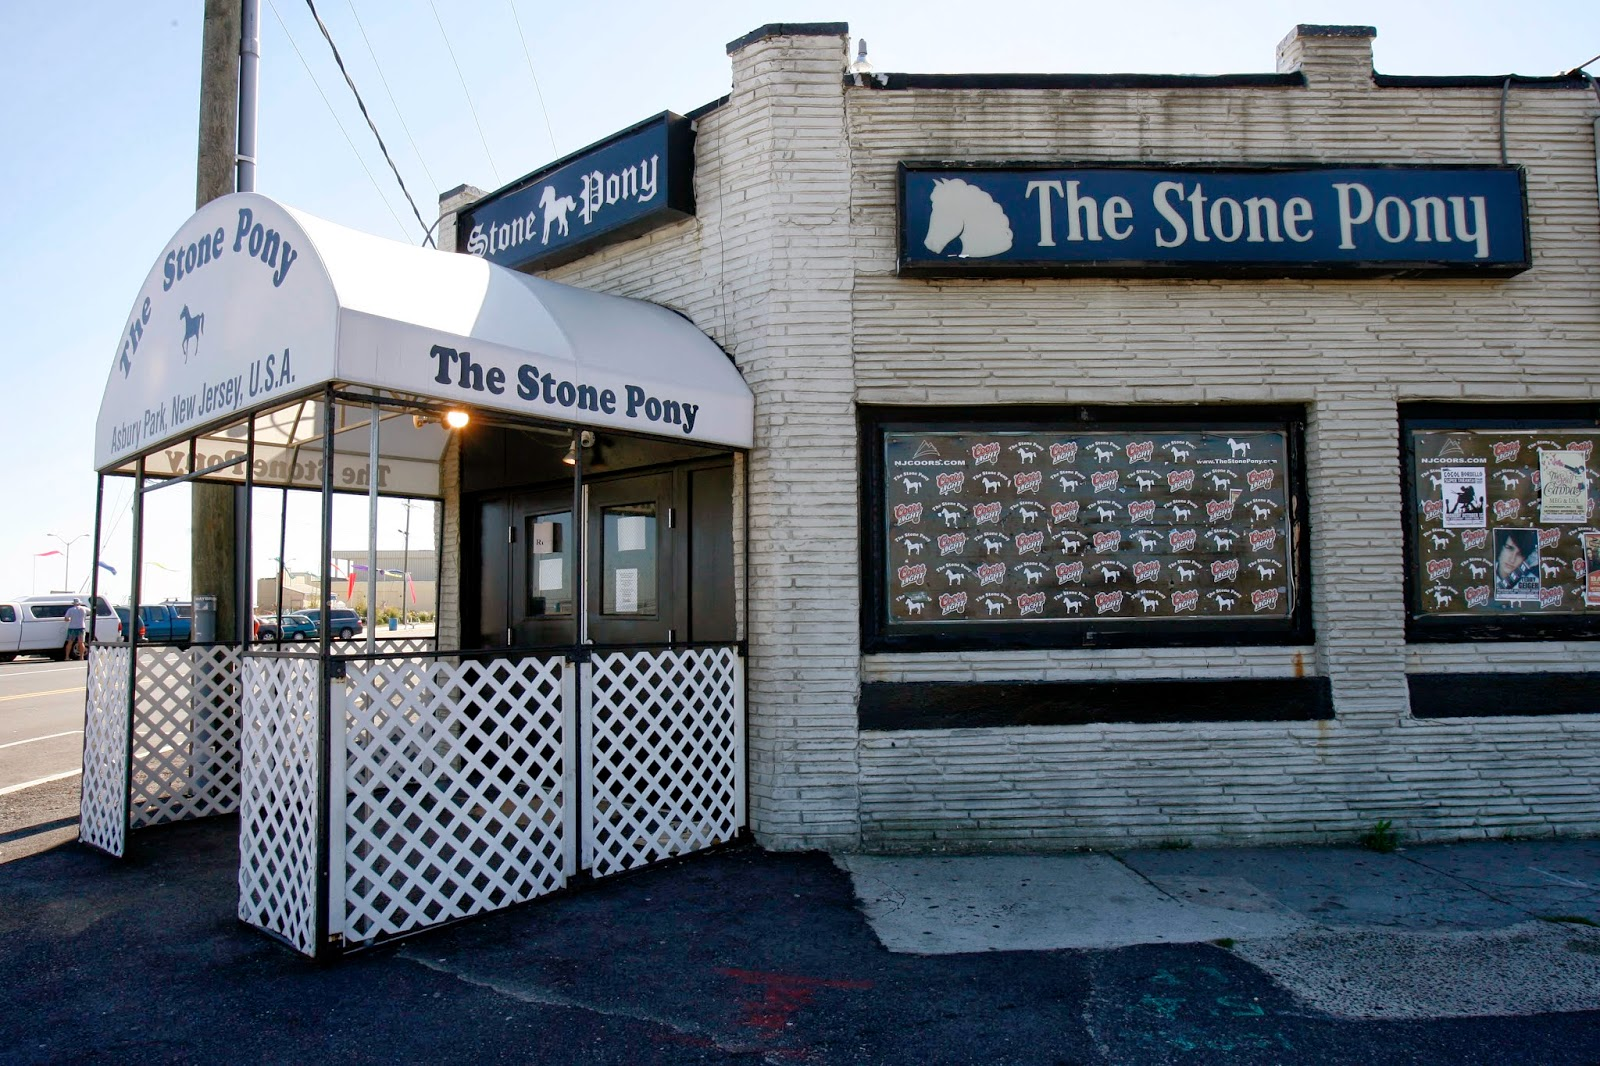 The Stone Pony Asbury Park, New Jersey